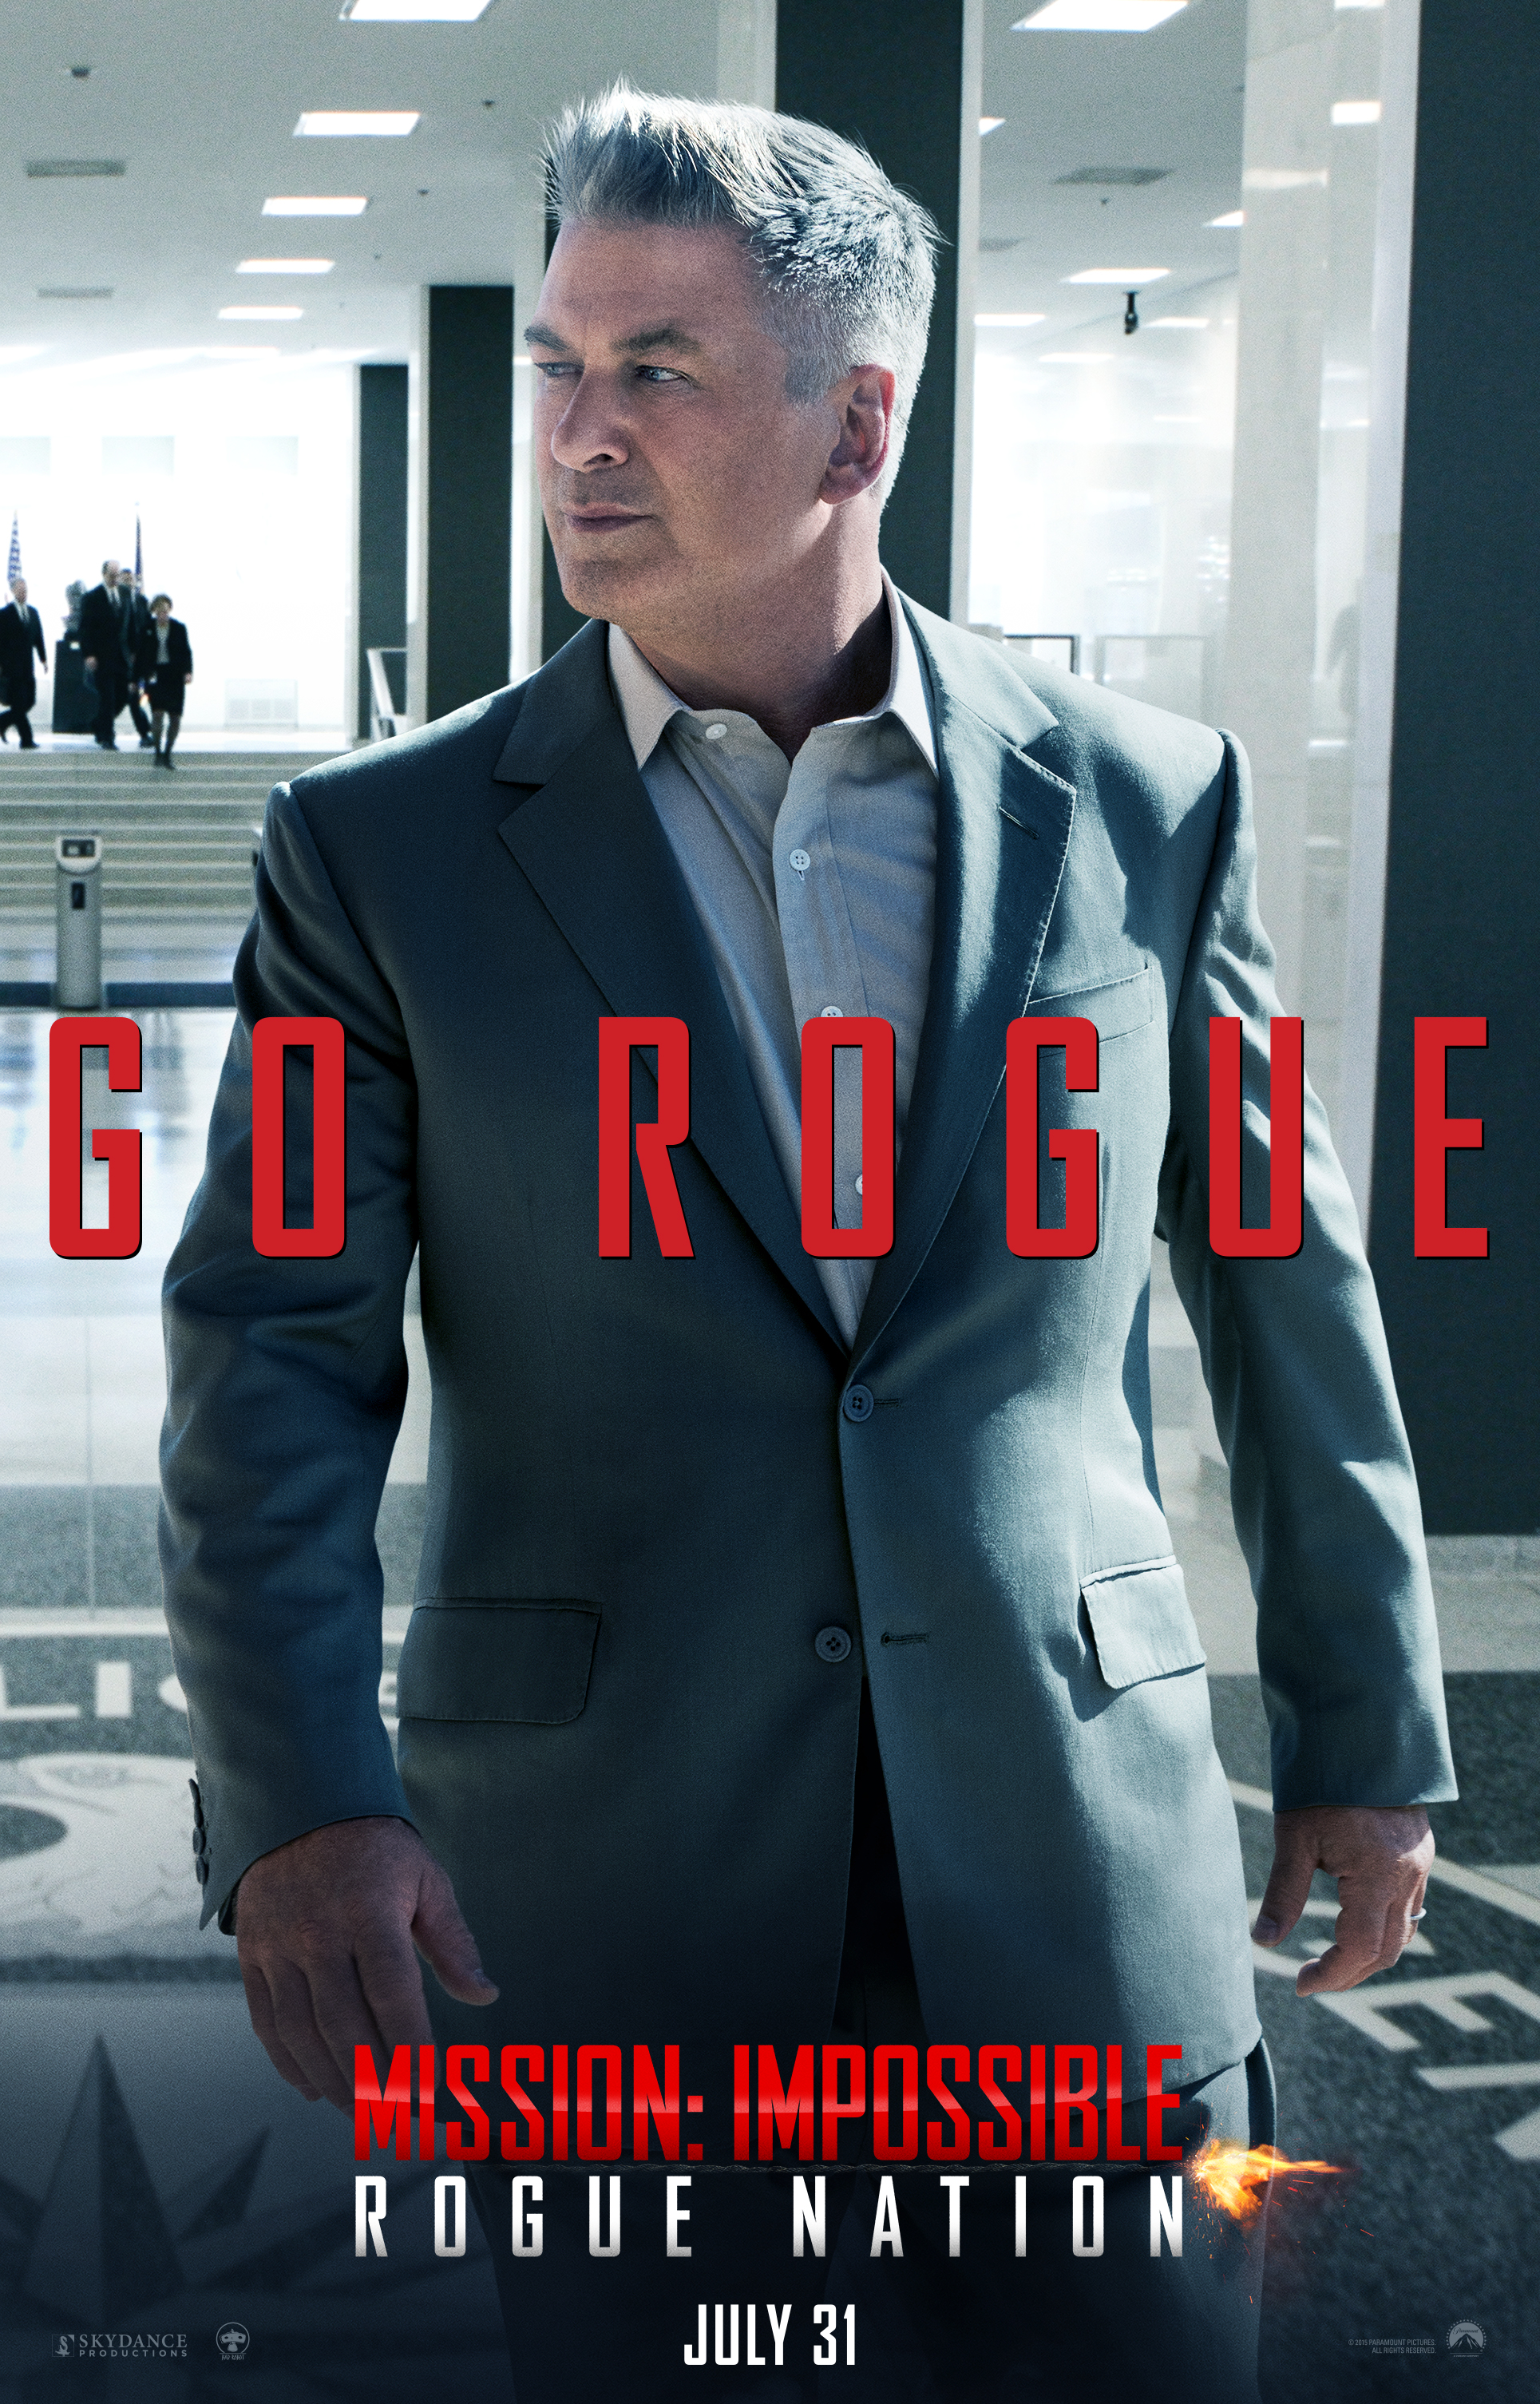 Mission Impossible Rogue Nation poster 3.jpg